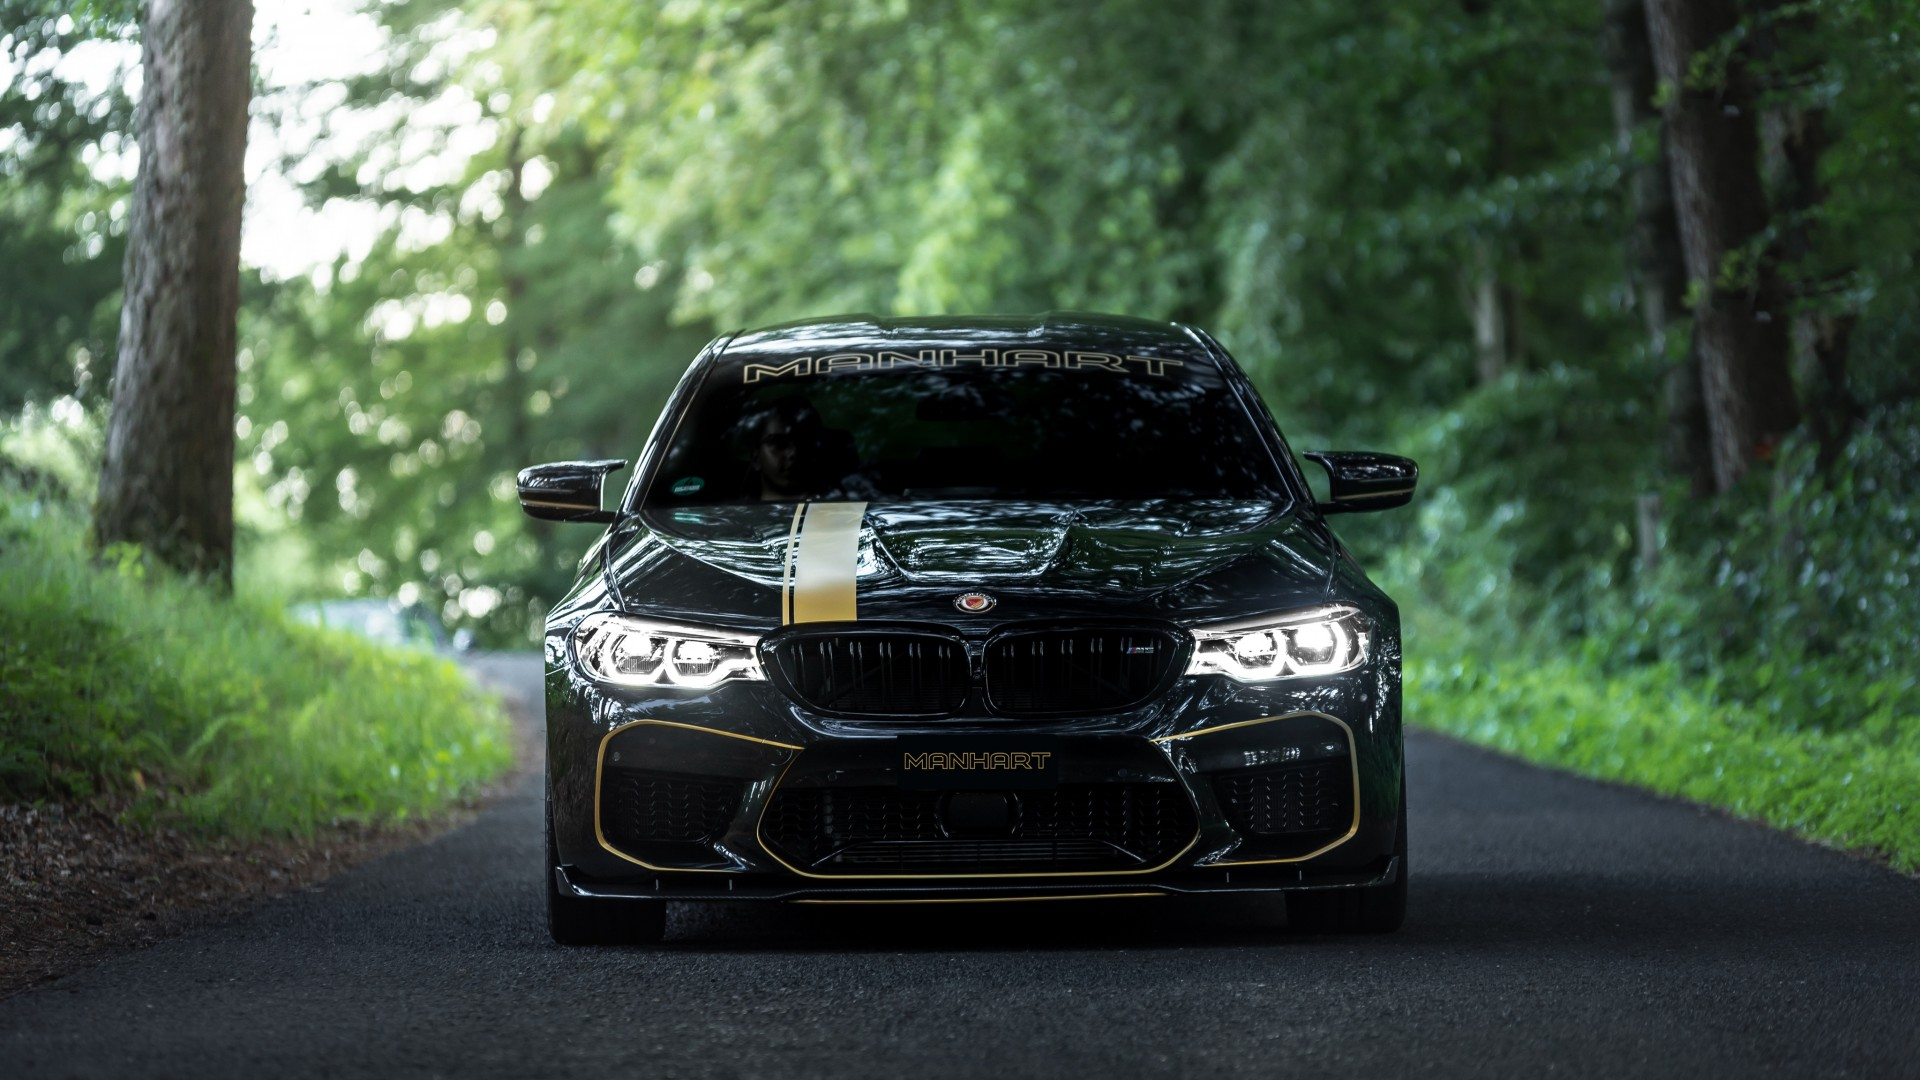 BMW M5 Manhart Racing MH5 700 2018 4K 2 Wallpaper | HD Car Wallpapers | ID #10845